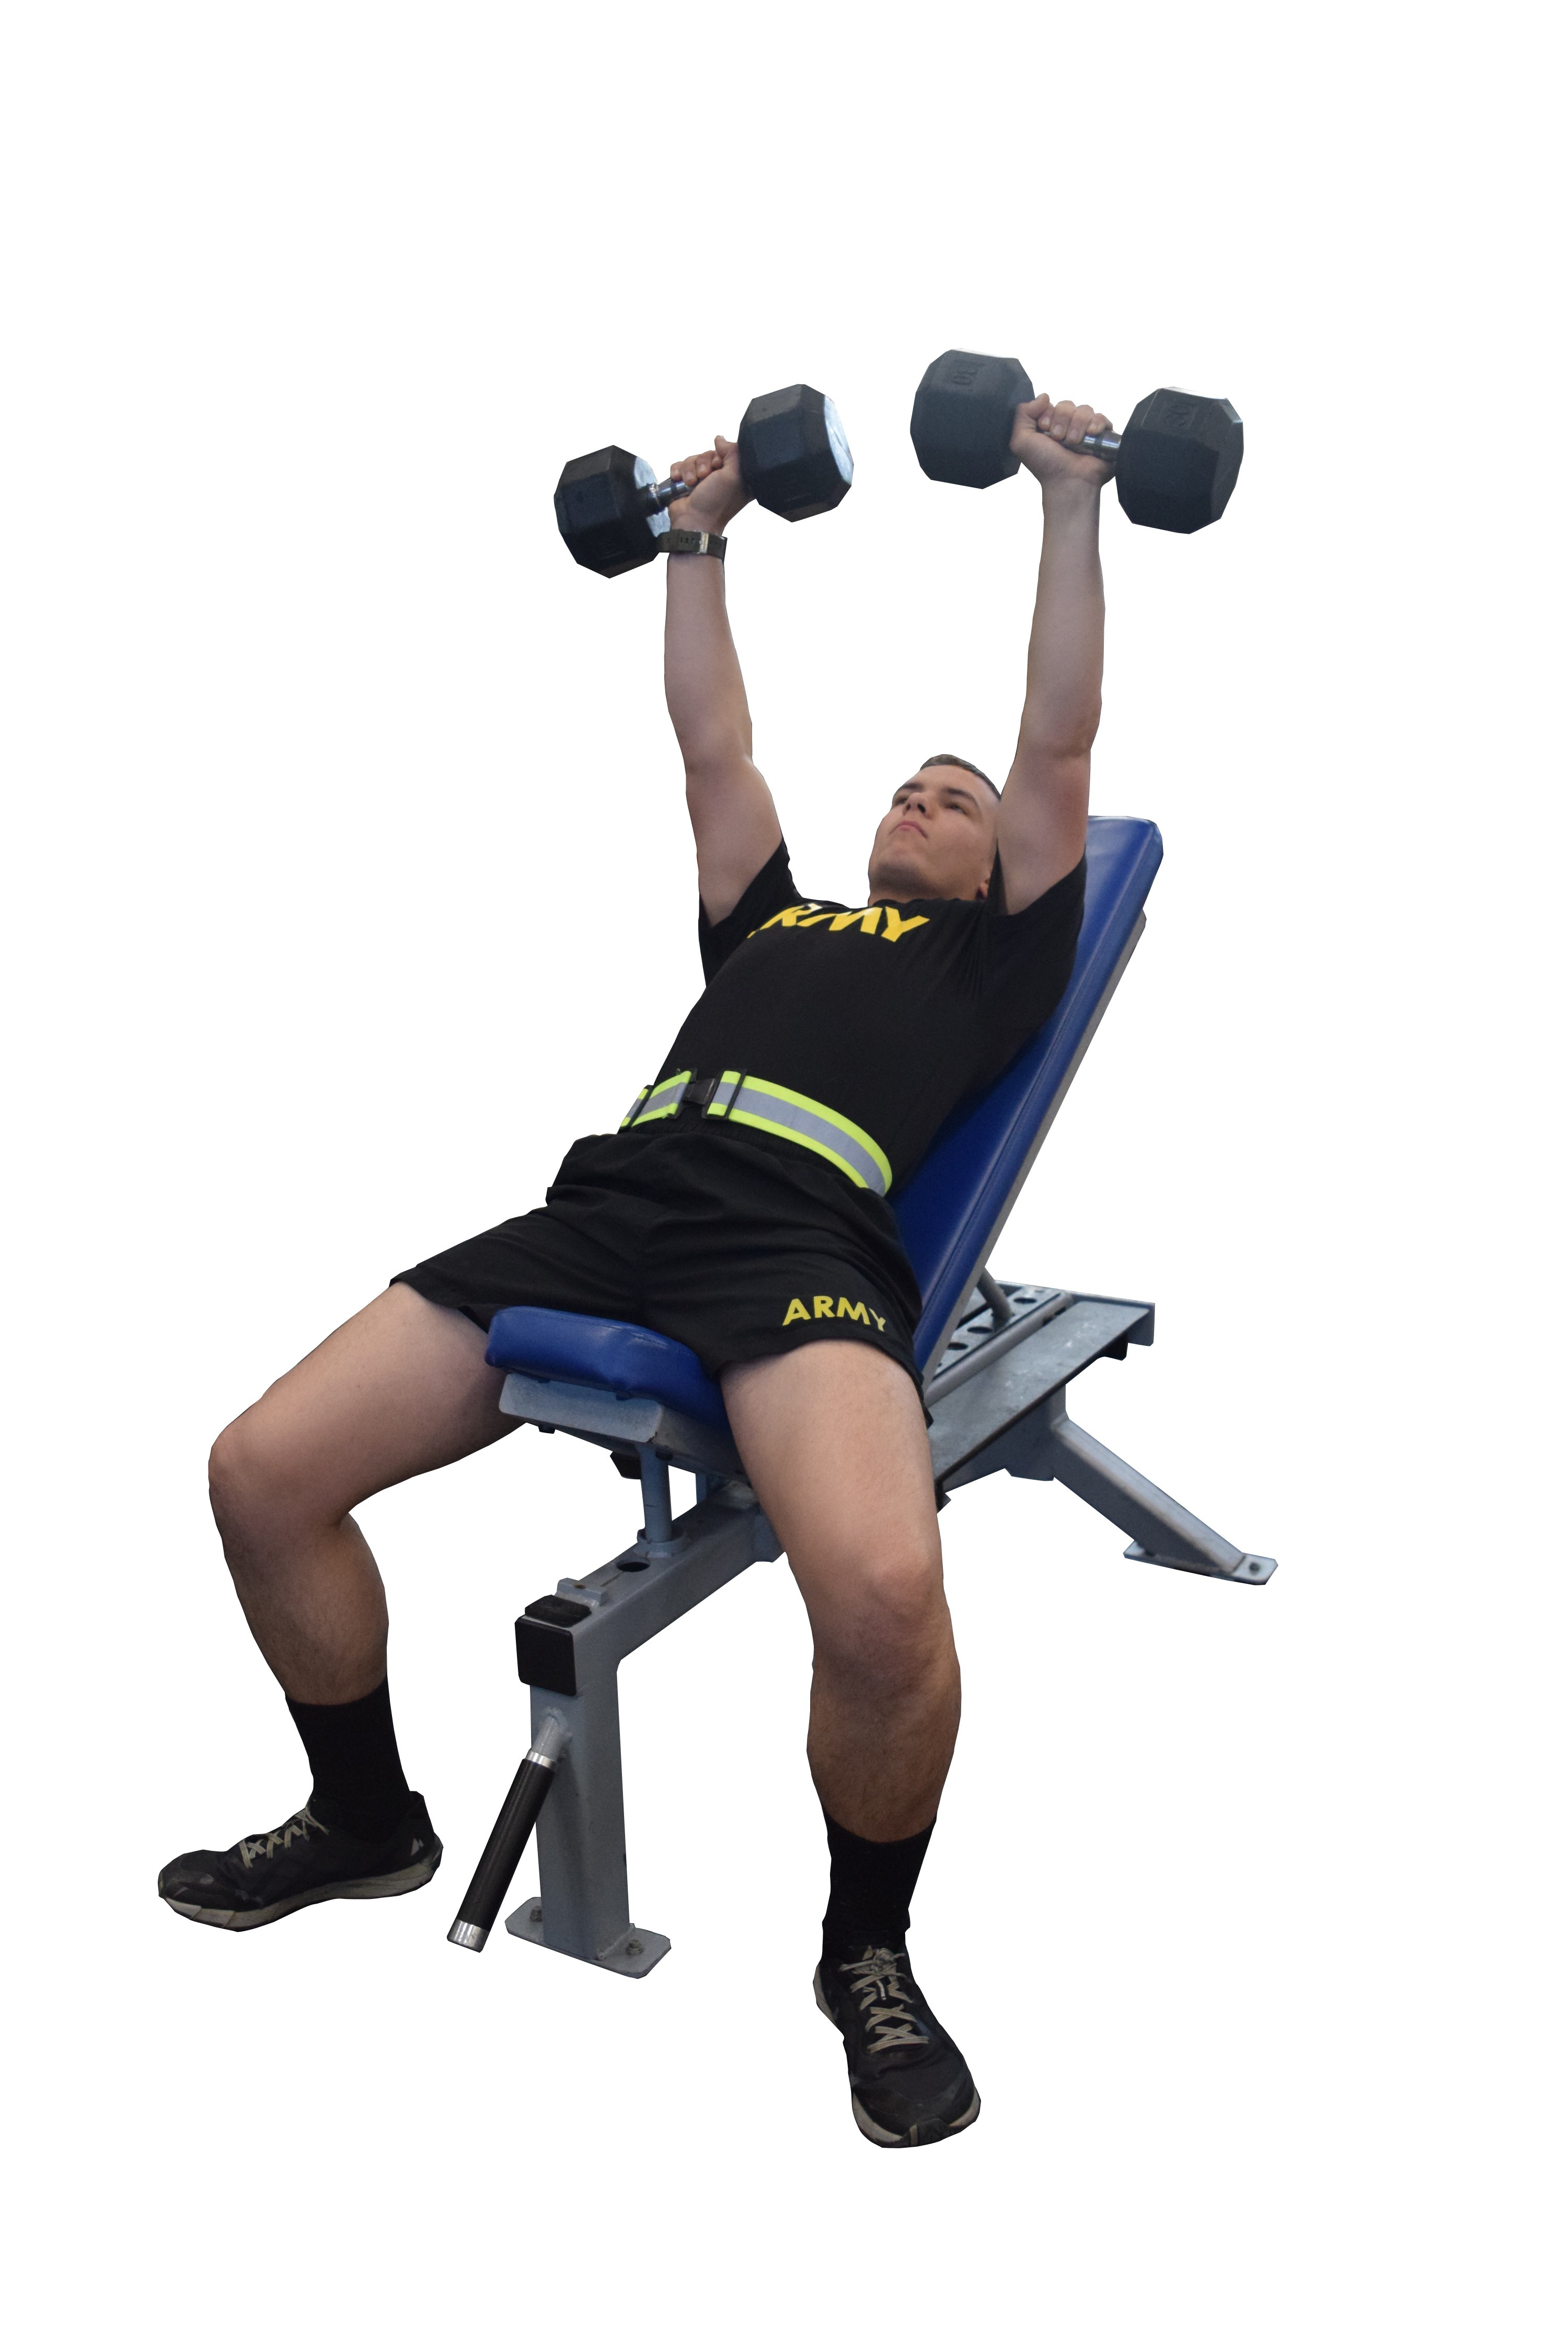 Form Matters Inclined Dumbbell Bench Press Article The United States Army